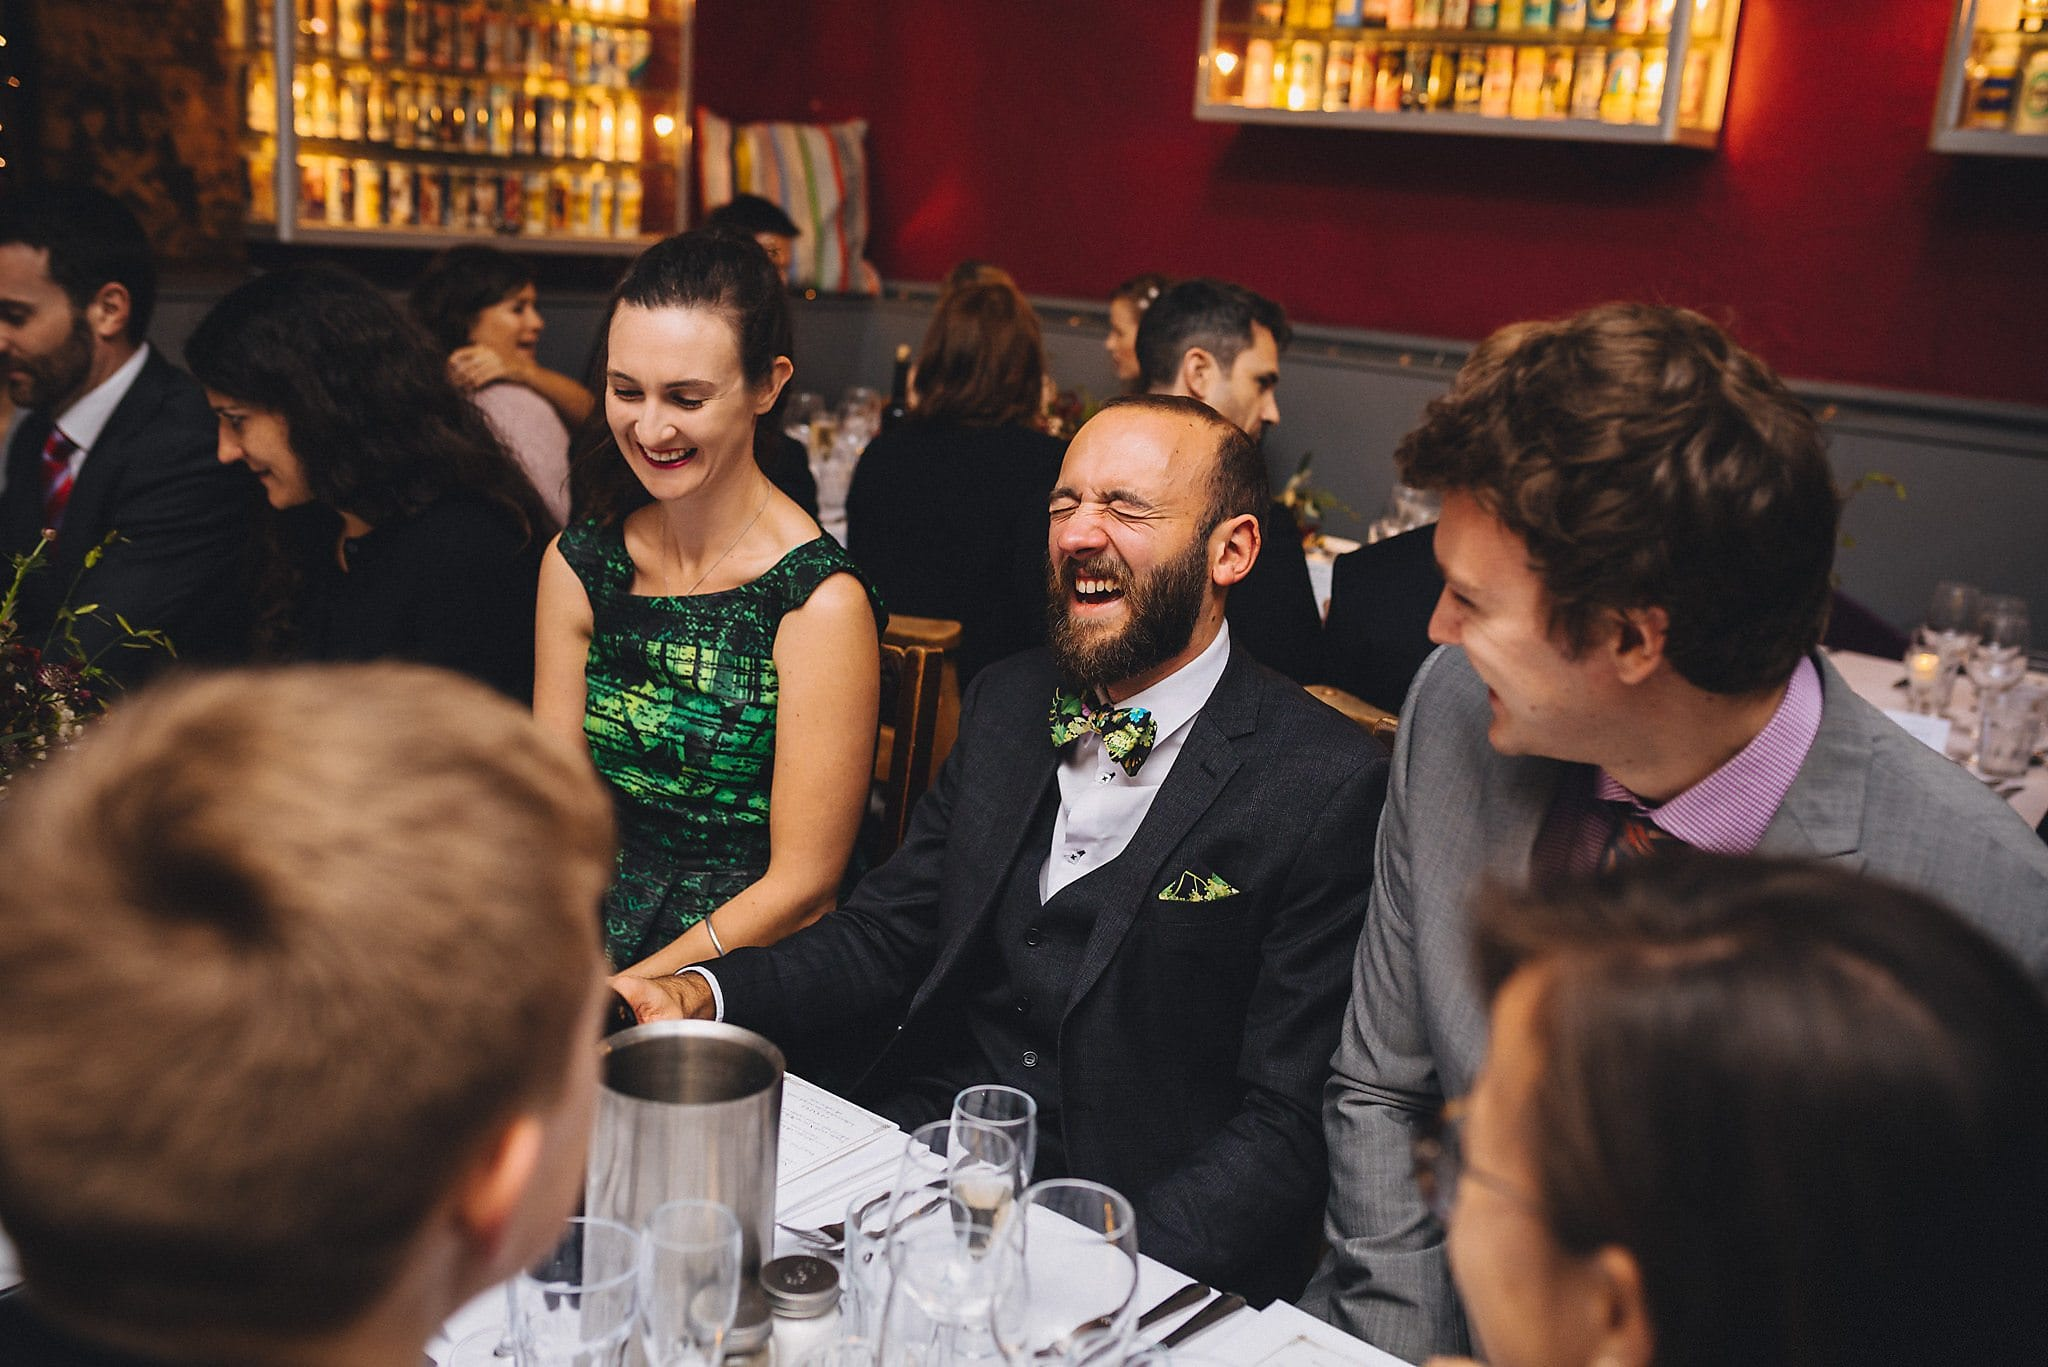 Guests laughing at wedding reception